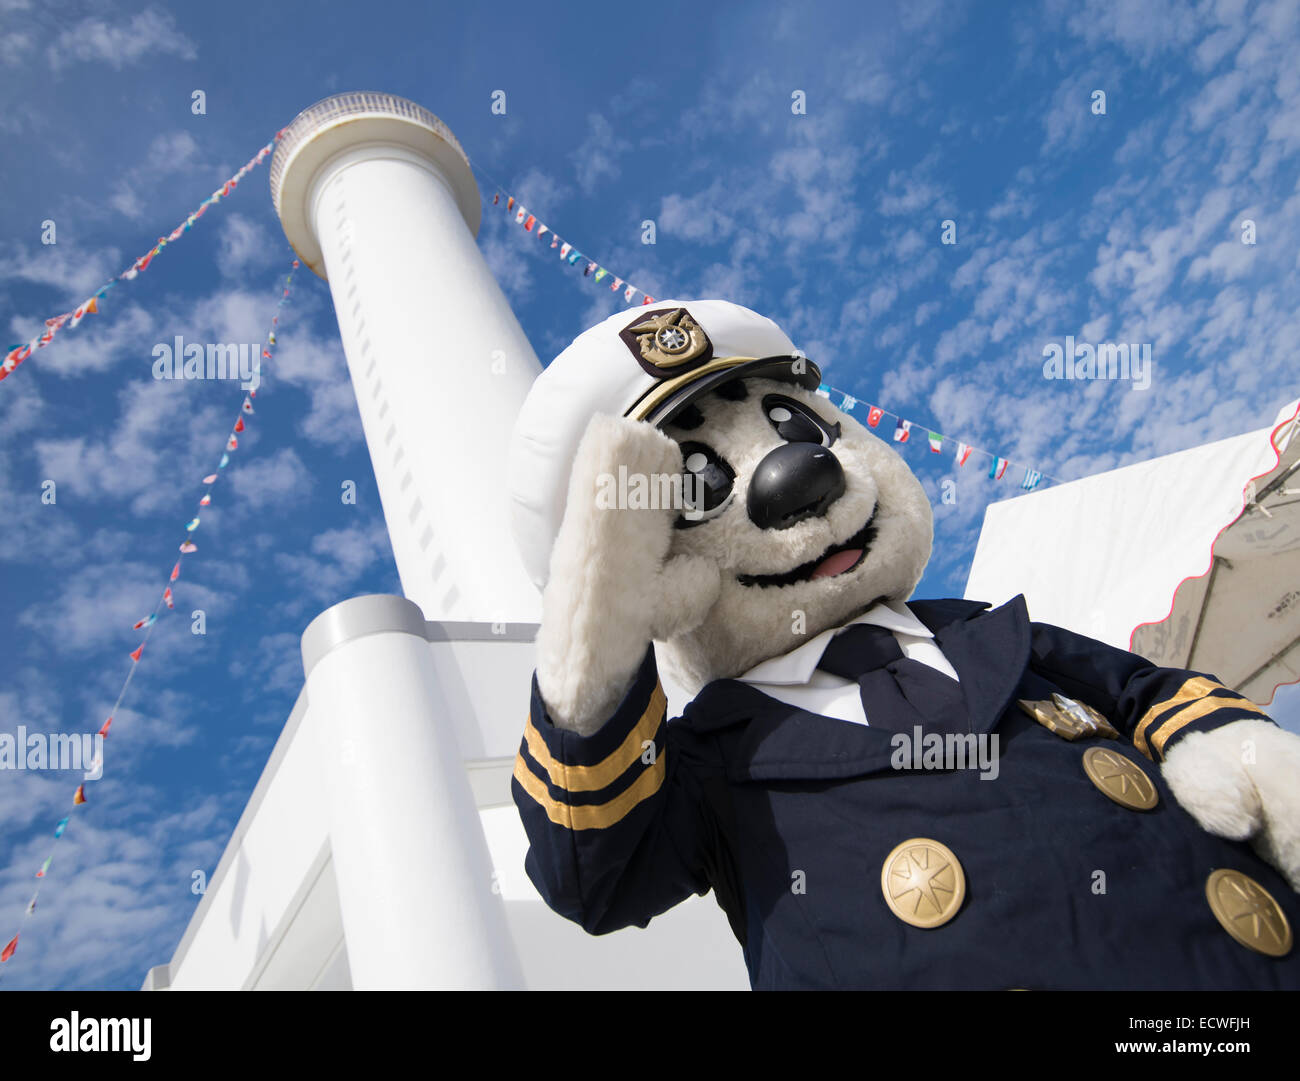 Japanese Self Defense Force coastguard mascot stands in front of the Cape Zanpa Lighthouse, Yomitan, Okinawa, Japan - Stock Image